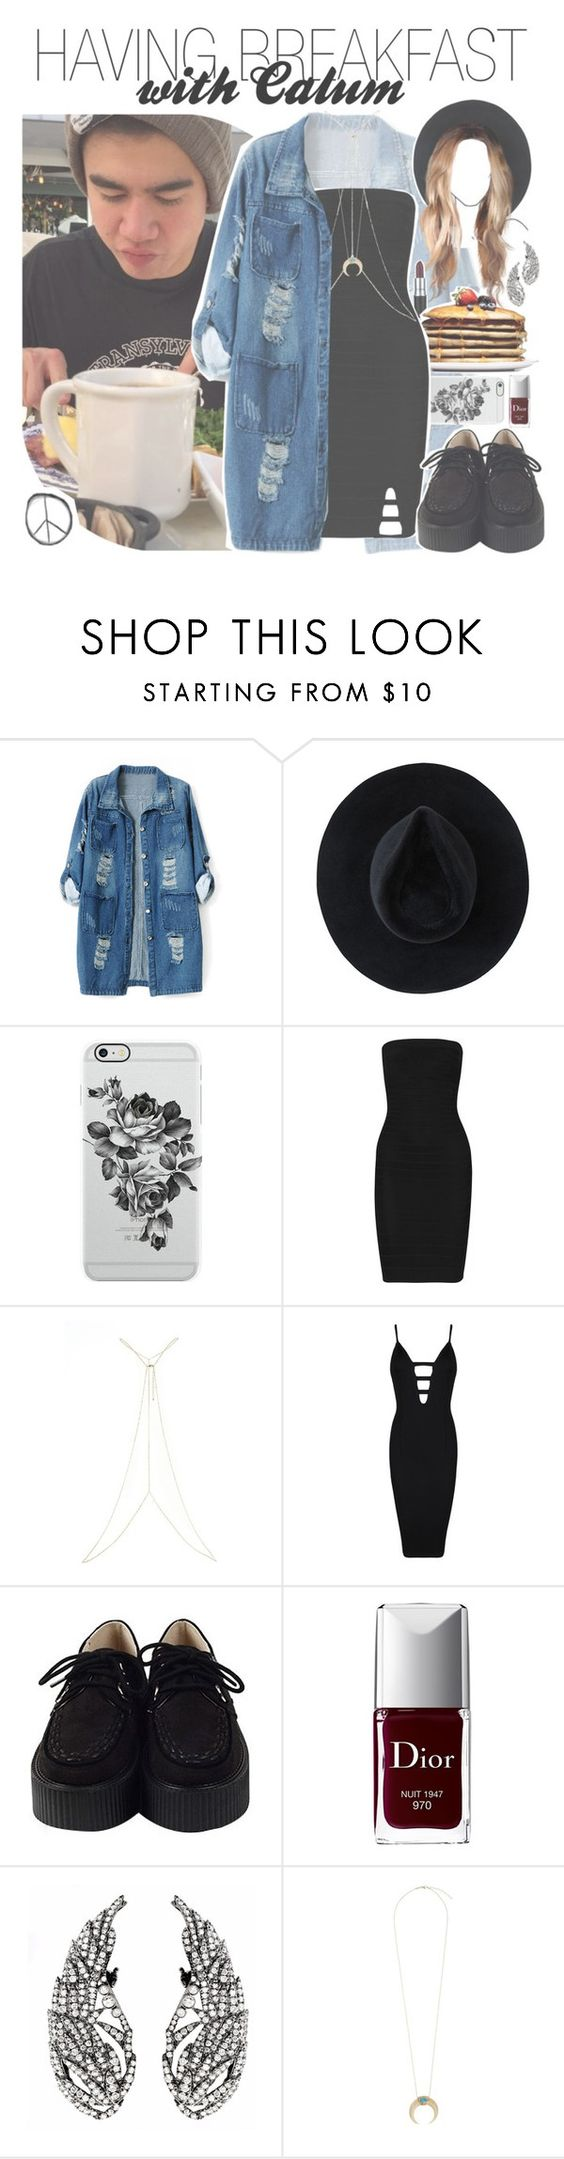 """having breakfast with calum"" by fangirlsets ❤ liked on Polyvore featuring Chicnova Fashion, Ryan Roche, Uncommon, M.A.C, Hervé Léger, River Island, Posh Girl, Christian Dior and Jacquie Aiche"